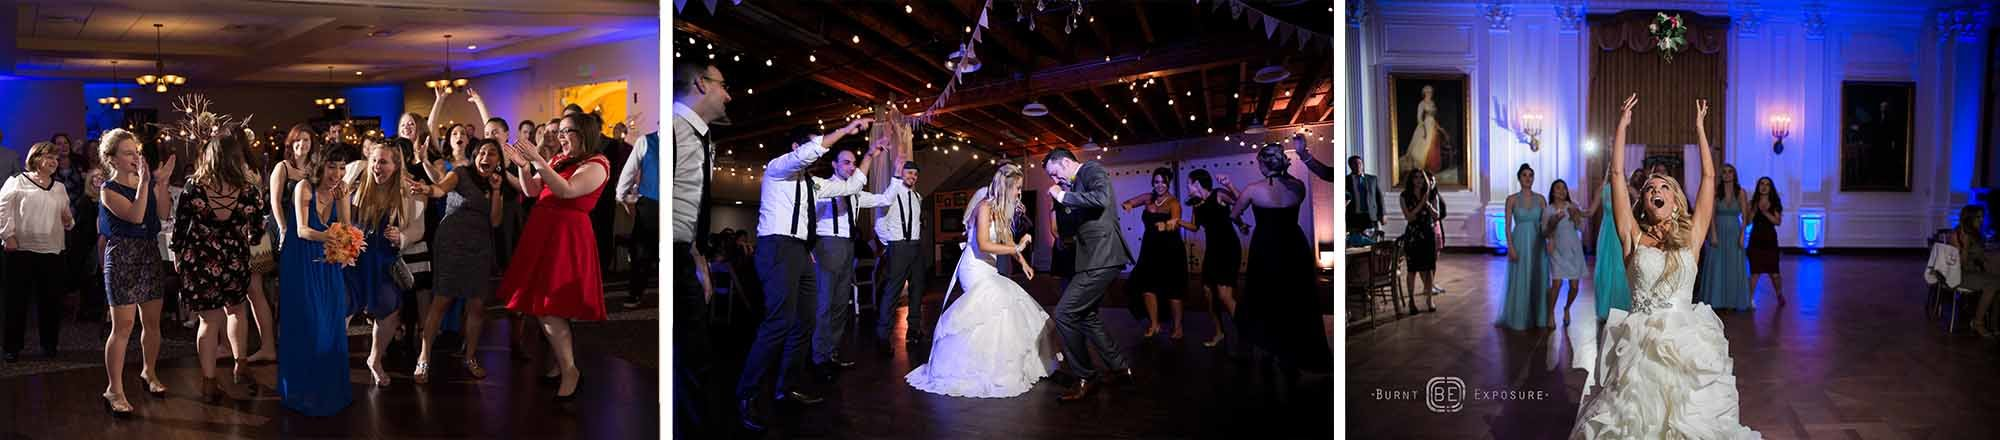 Orange County Wedding DJ